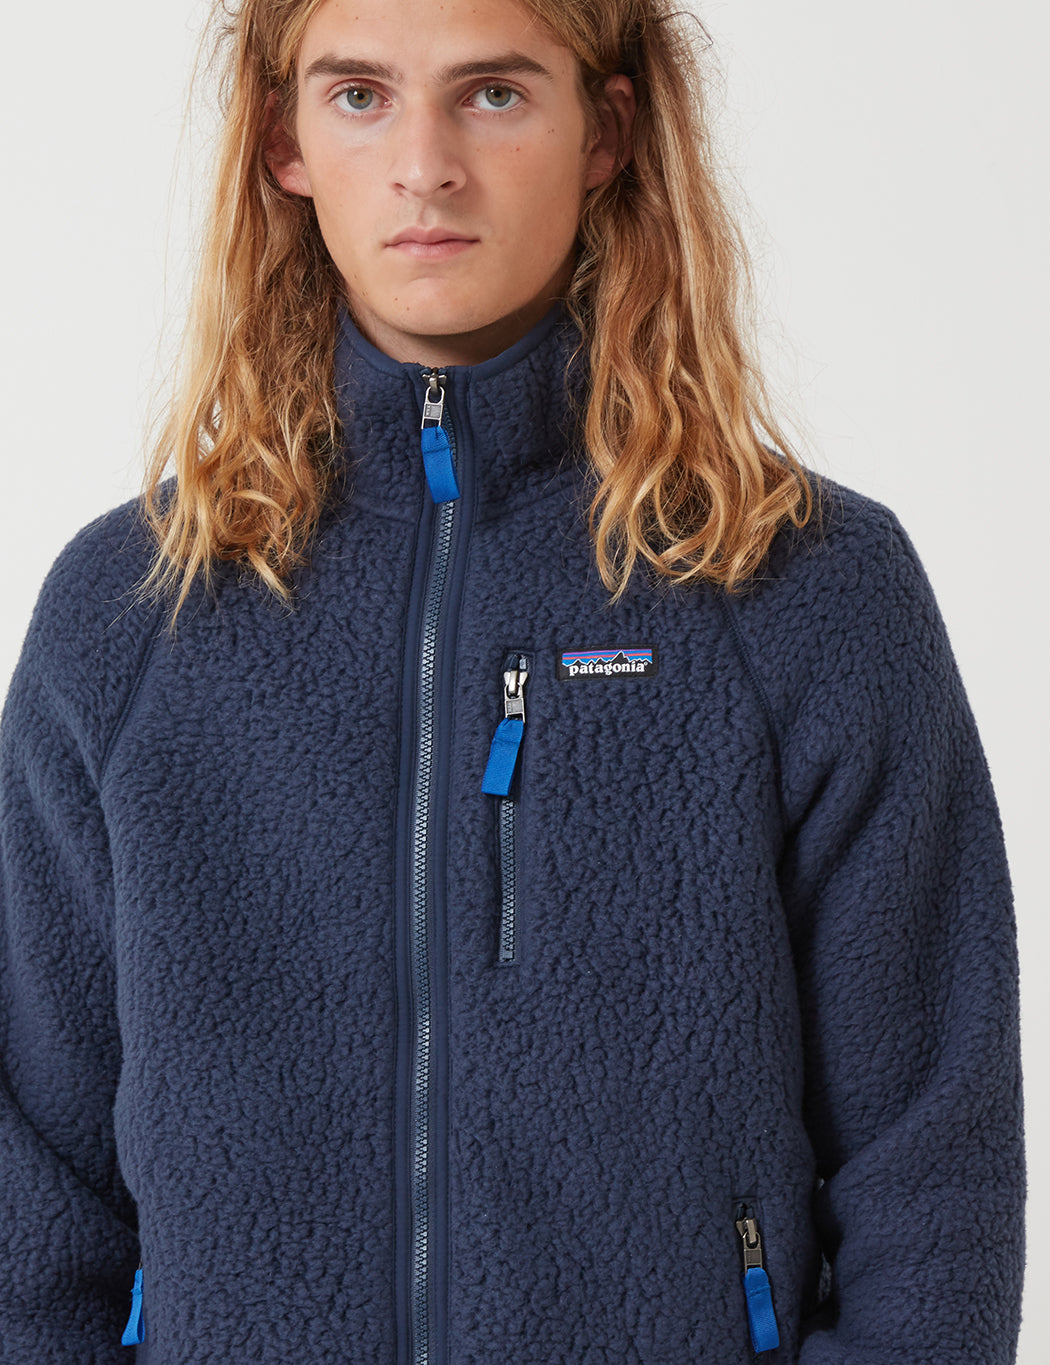 shop look out for buying cheap Patagonia Retro Pile Jacket - New Navy Blue | URBAN EXCESS.